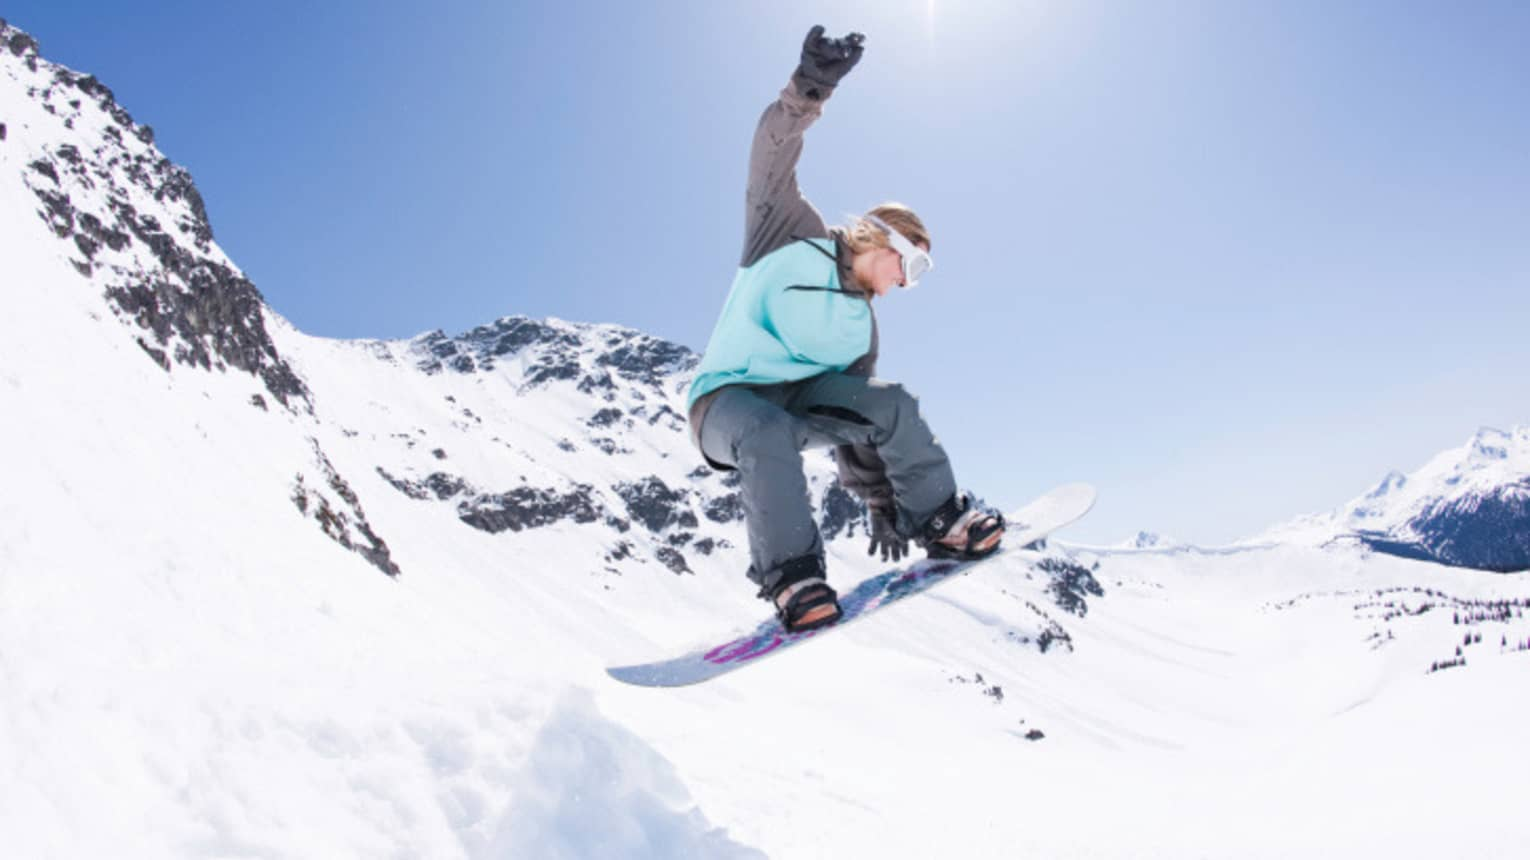 Snowboarder jumps, grabs board in mid-air on sunny mountain peak